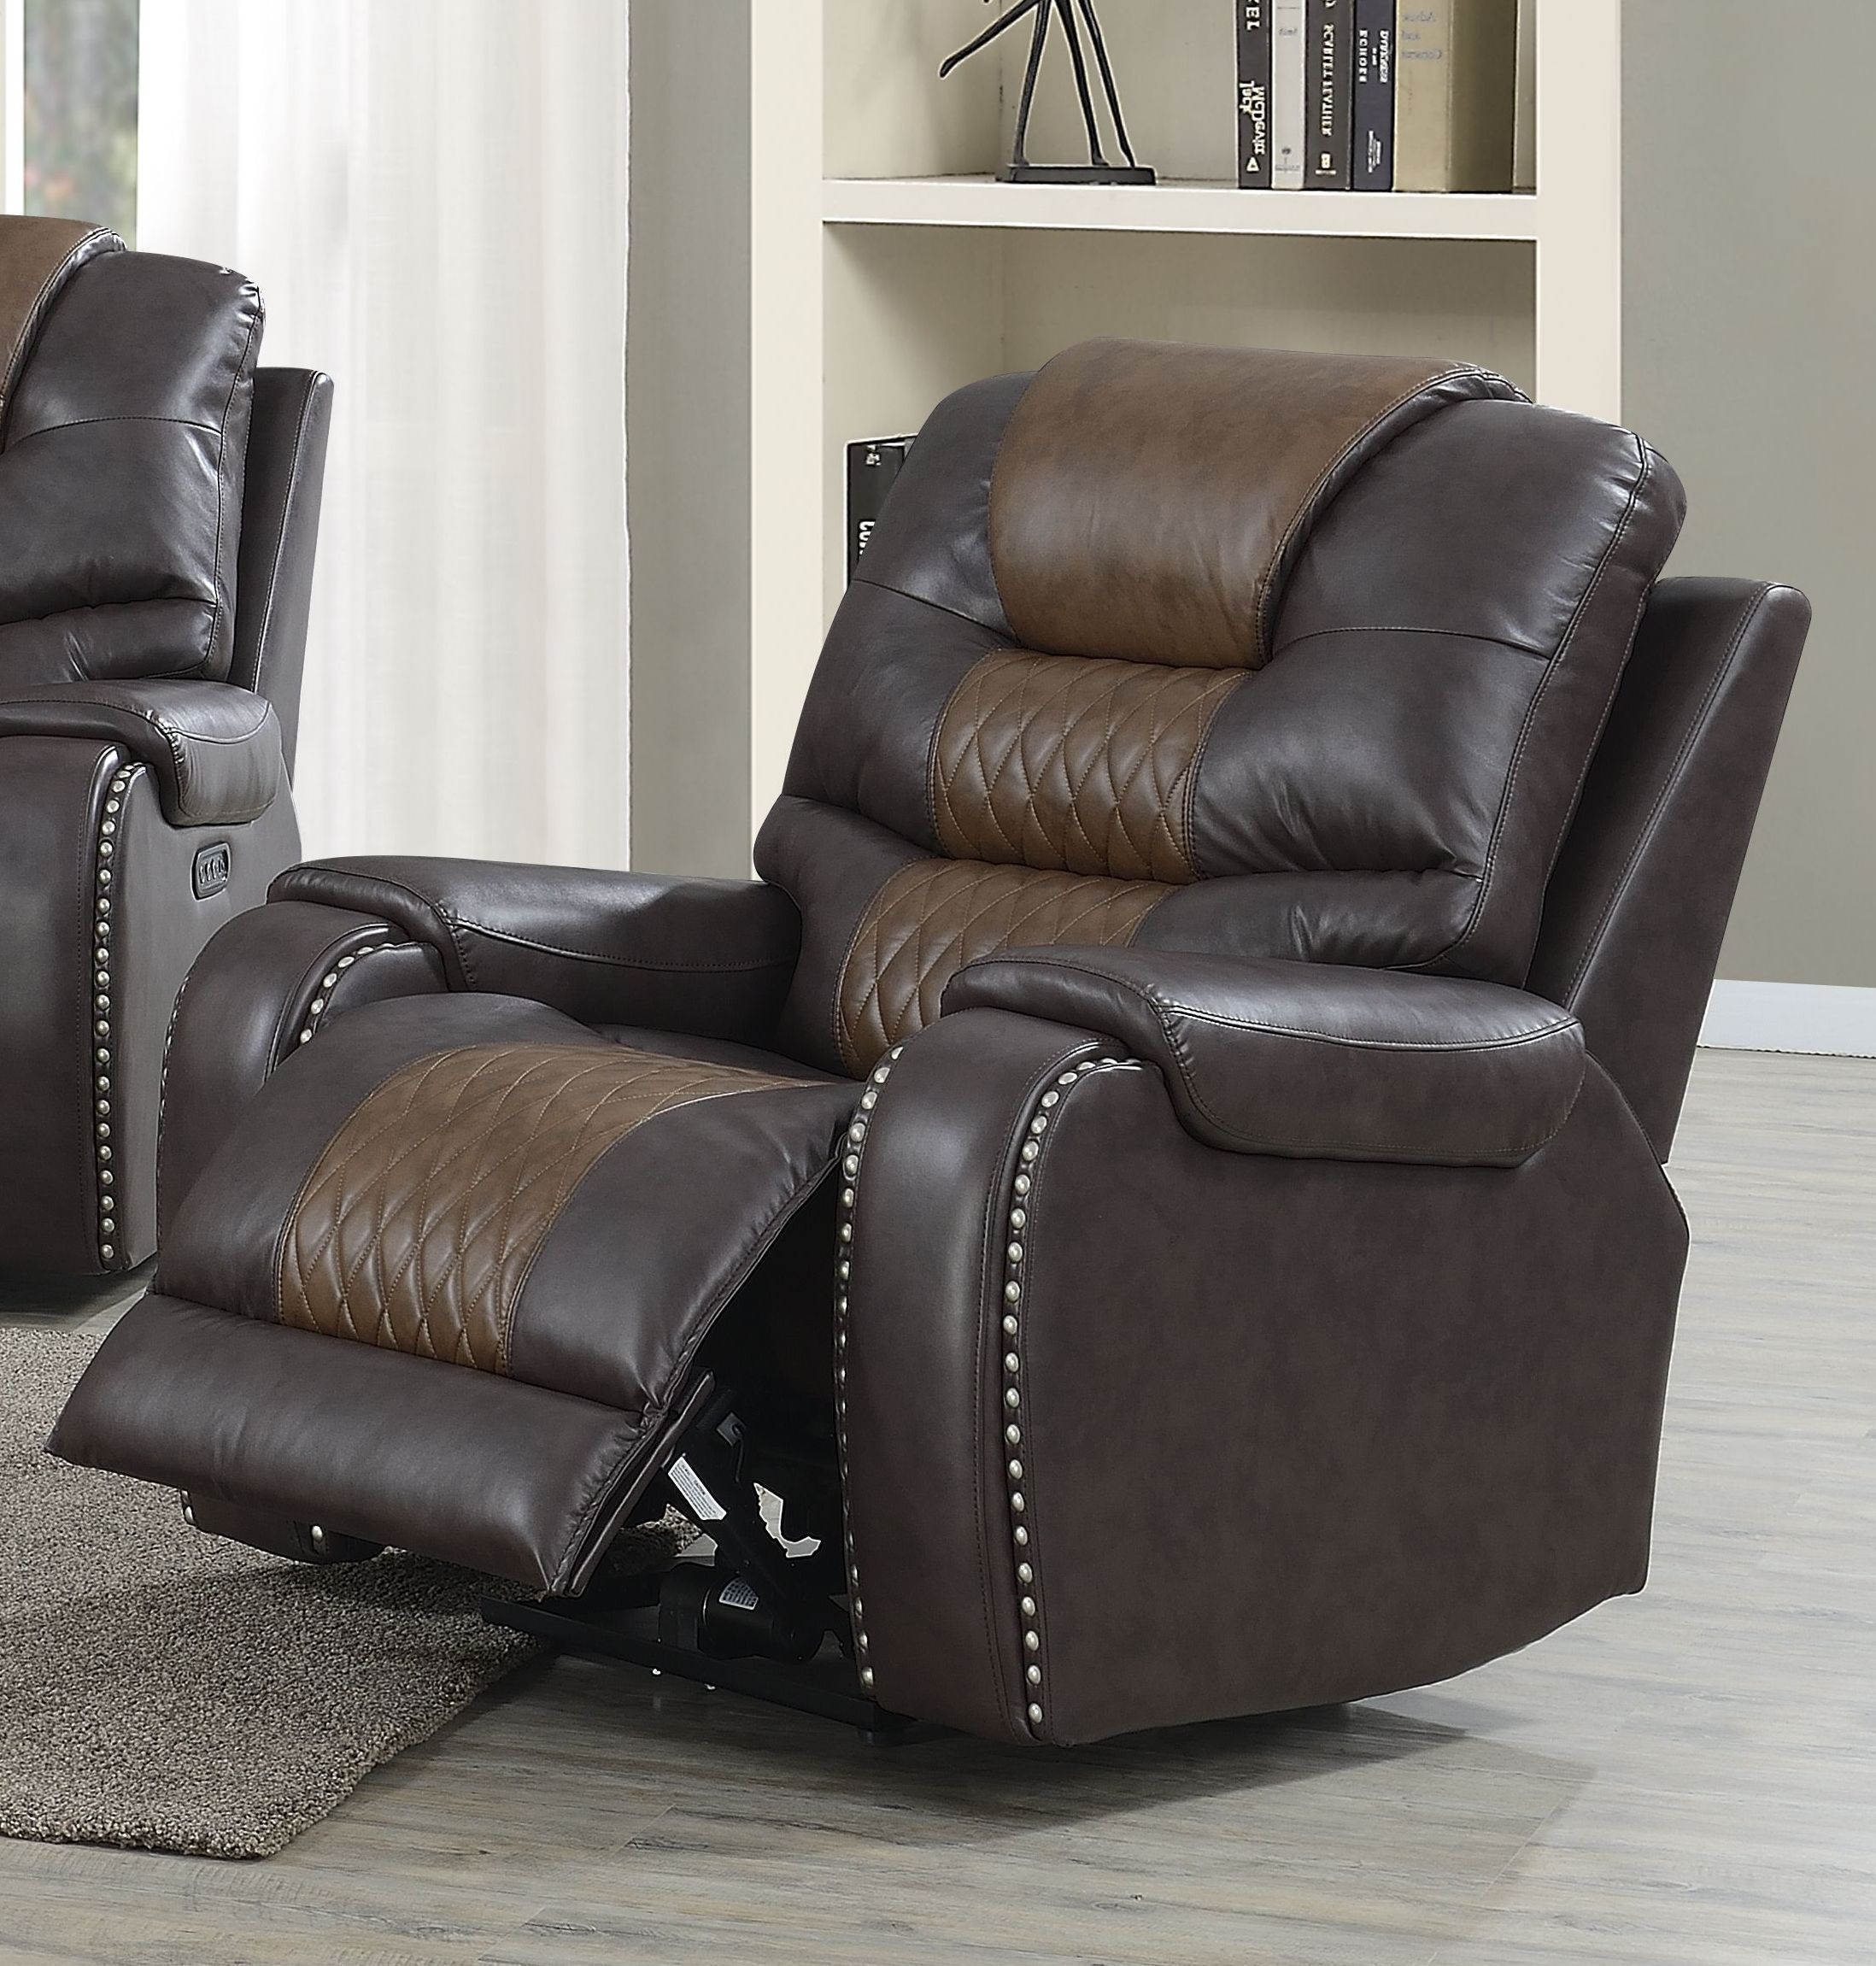 Enjoyable Steve Silver Park Avenue Brown Power Reclining Chair Ibusinesslaw Wood Chair Design Ideas Ibusinesslaworg